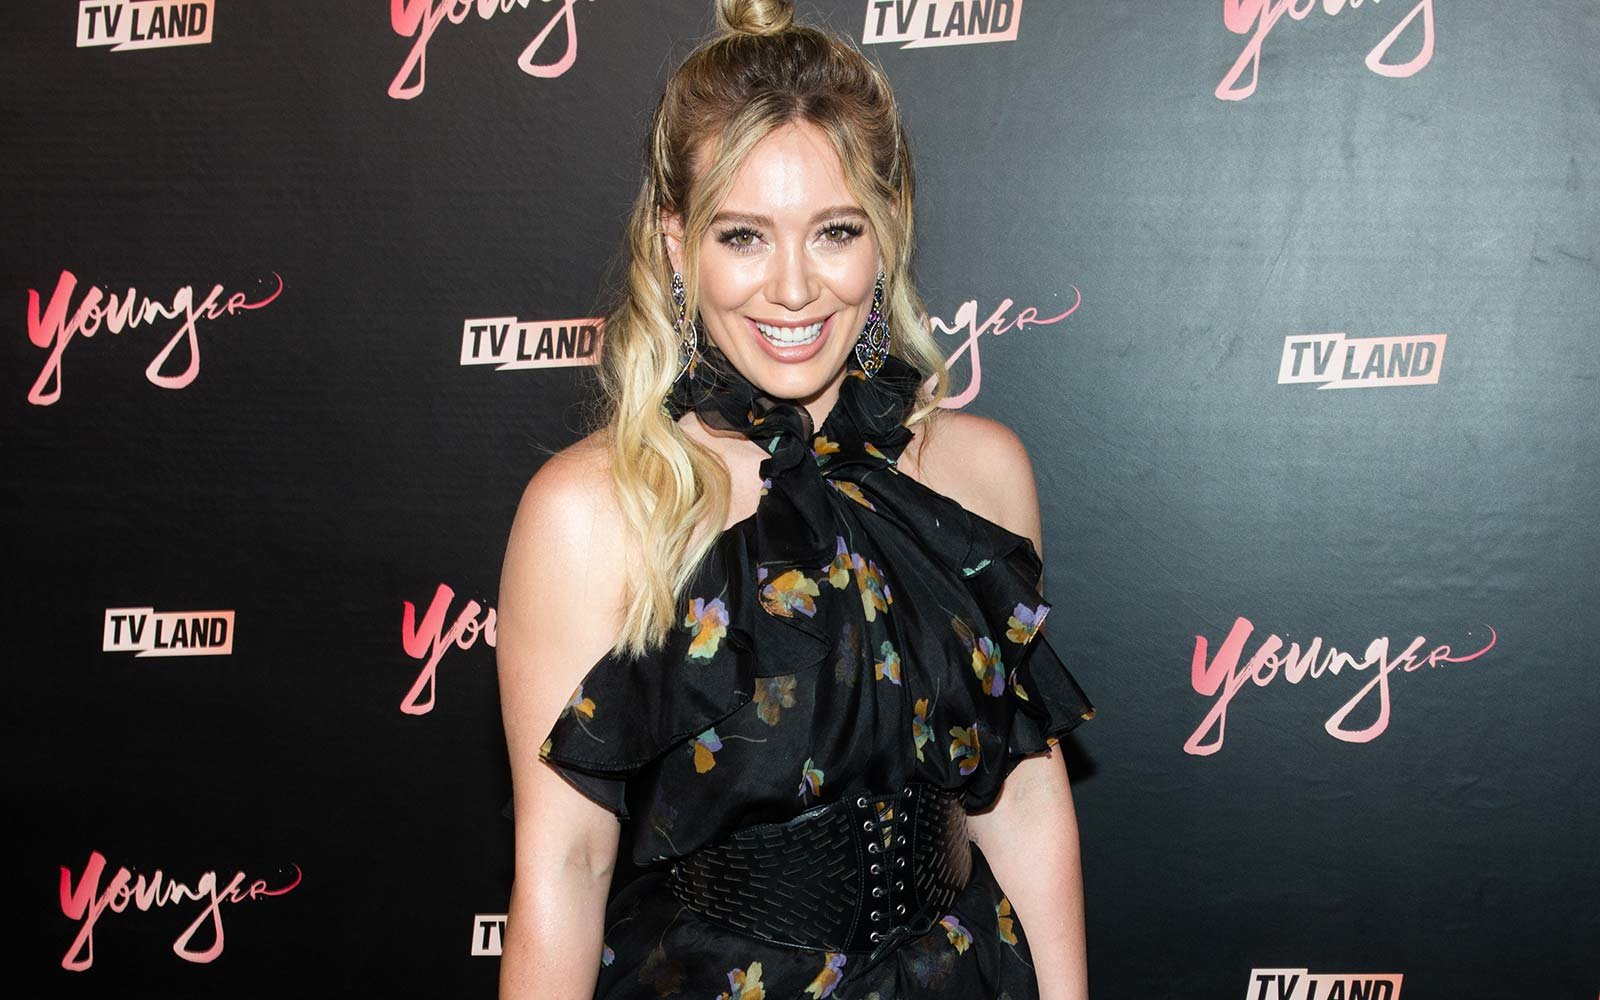 """Actress Hilary Duff attends the """"Younger"""" season four premiere party in New York City."""